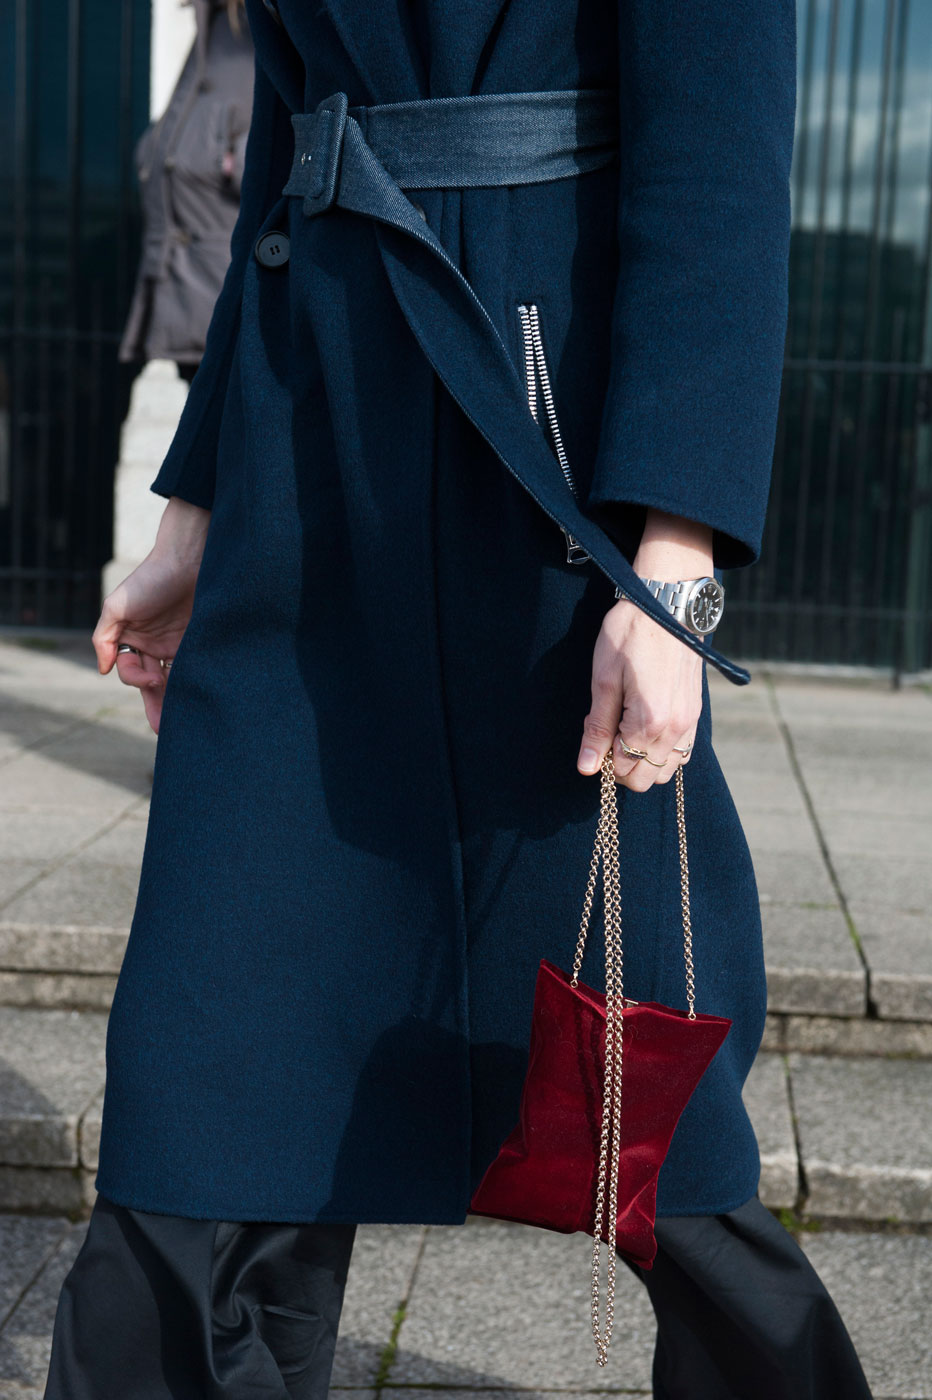 The Best Of London Fashion Week Street Style 2015 Day 5